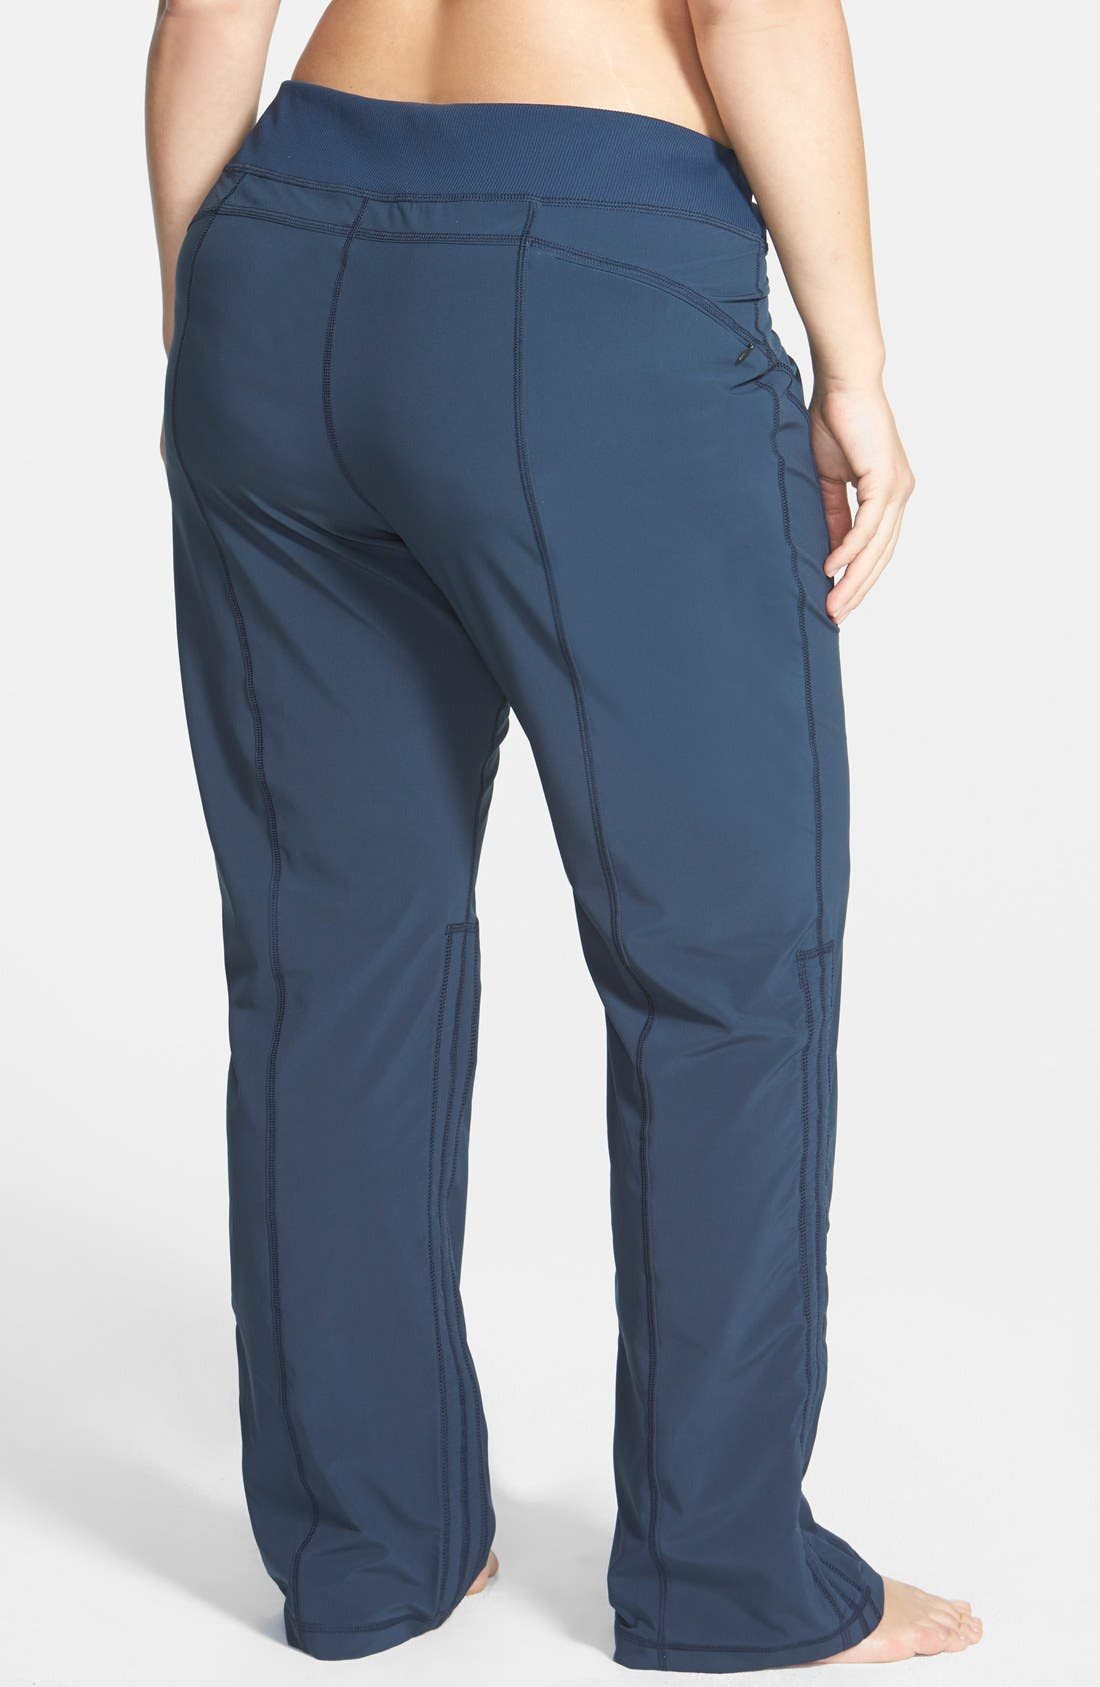 'Work It' Pants,                             Alternate thumbnail 2, color,                             Navy Eclipse